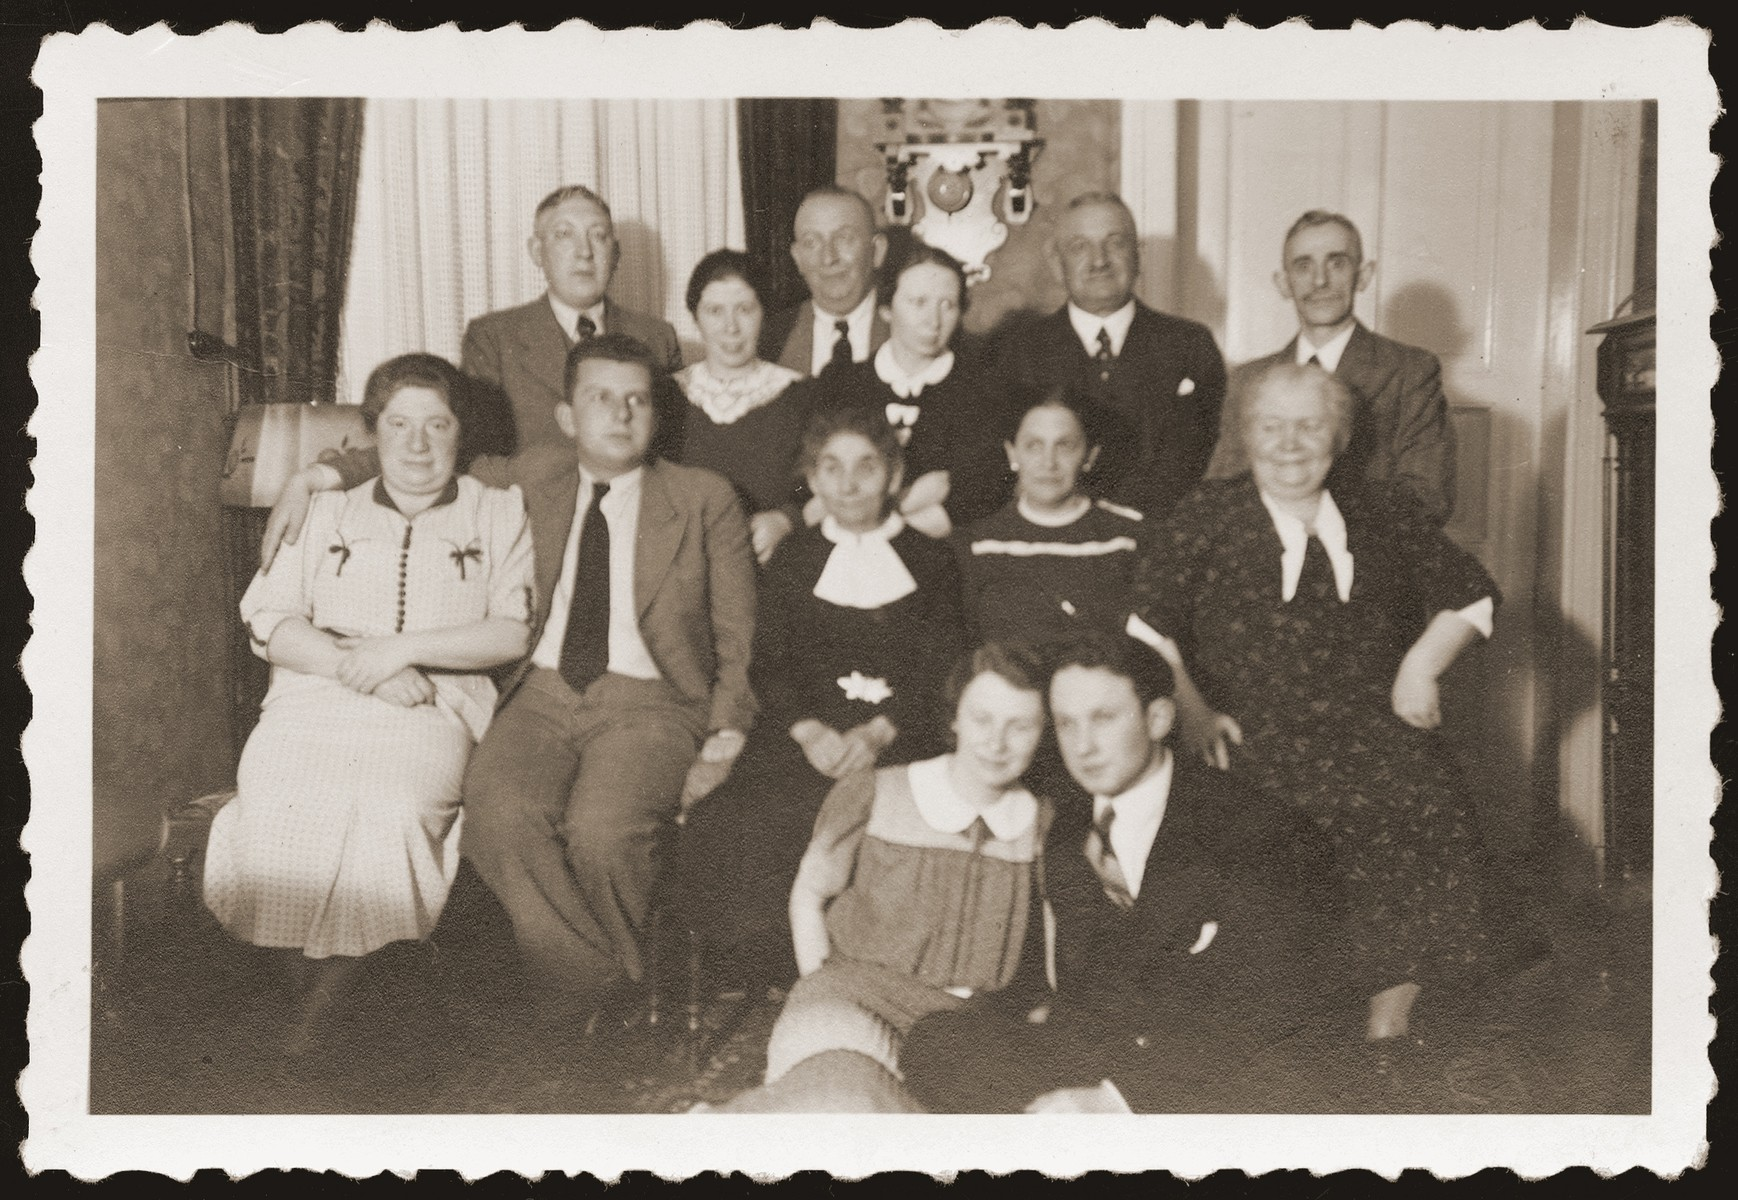 Gera and Alfred Borchart celebrate their engagement with friends and family at the Hettman home.    Pictured seated second from the left is Walter Jacobsberg.  His father, Siegfried, stands third from the left in the back.  Gera and Alfred Borchart were later deported to the Belzyce ghetto, where they were married on October 29, 1940.  The two perished two years later.